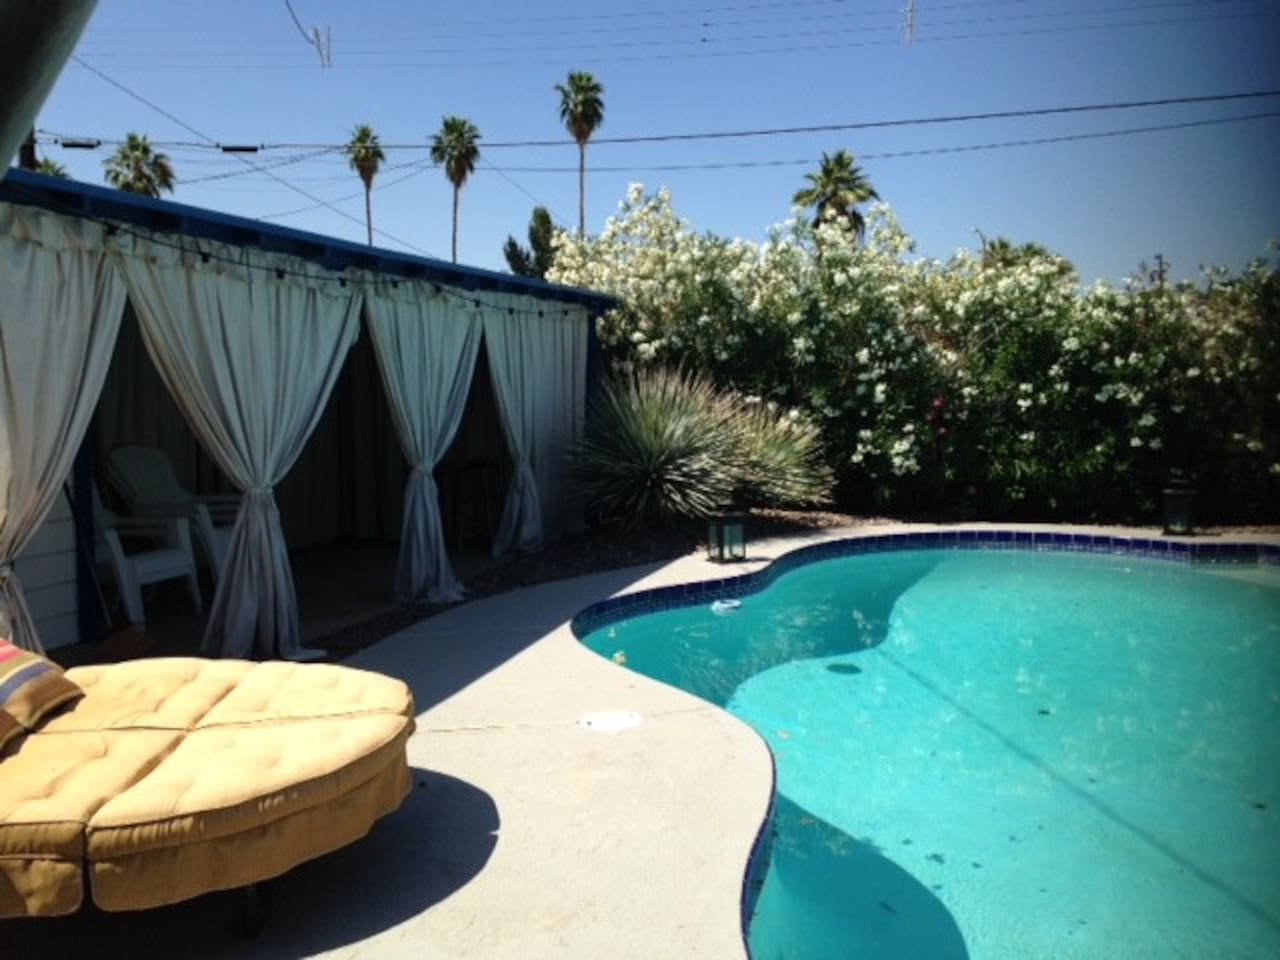 You backyard oasis with a daybed to lay out on for some great relaxation